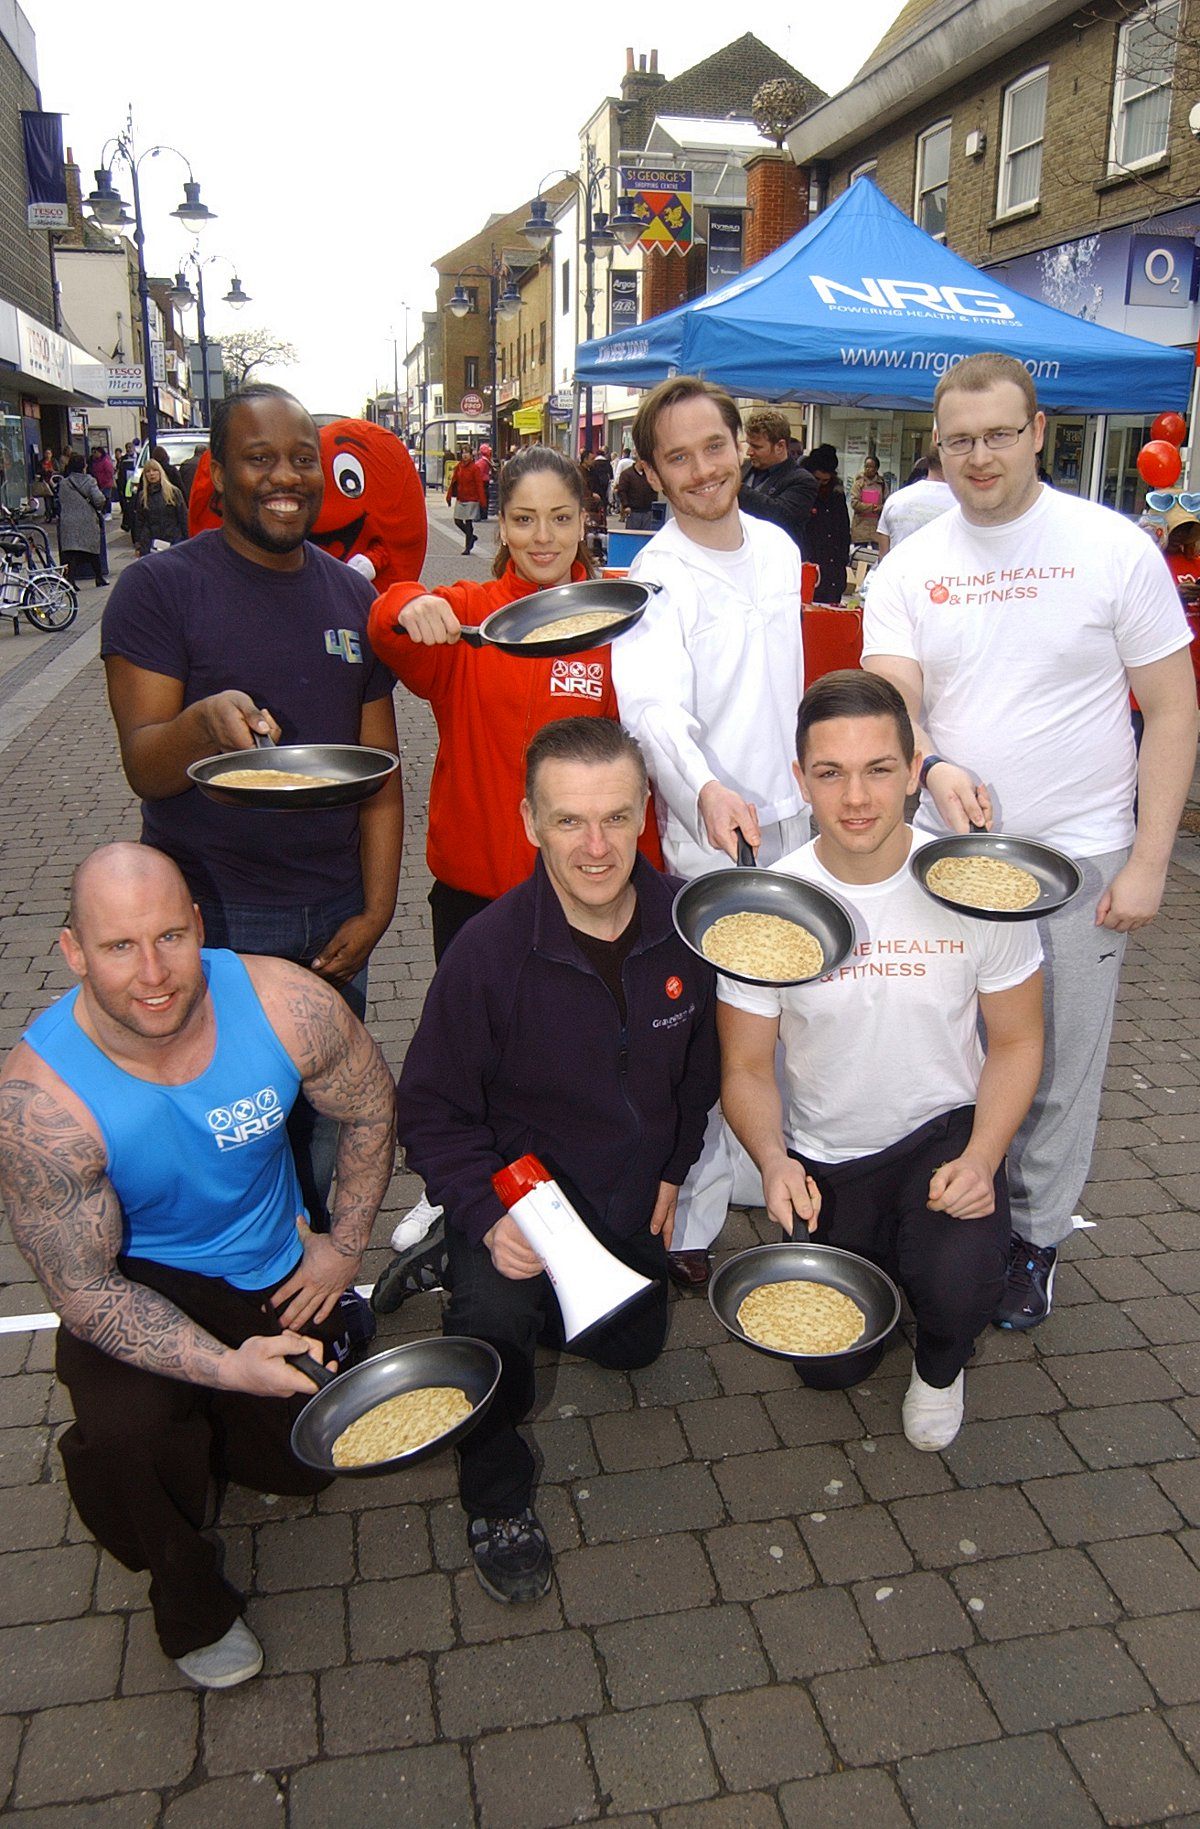 PICTURED: Pancake day races at Gravesend